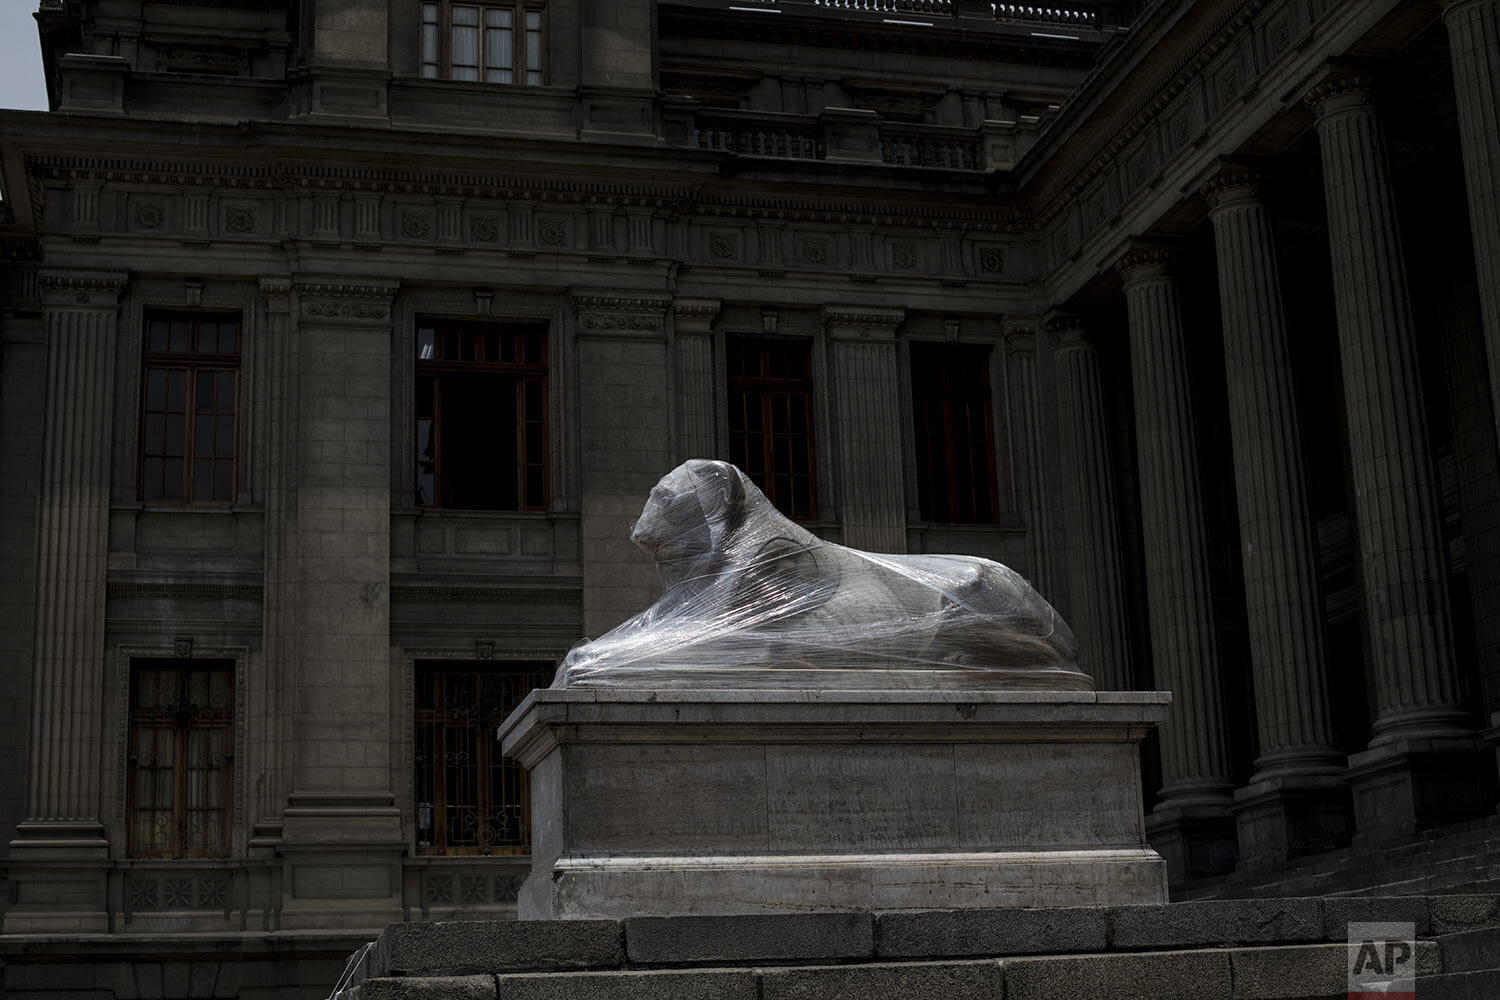 A lion statue outside the Palace of Justice is wrapped in plastic during maintenance in Lima, Peru, Tuesday, Dec. 1, 2020. Monuments were practically spared by protesters decrying a parliamentary coup in early November when Congress voted to oust ex-President Martín Vizcarra. (AP Photo/Rodrigo Abd)